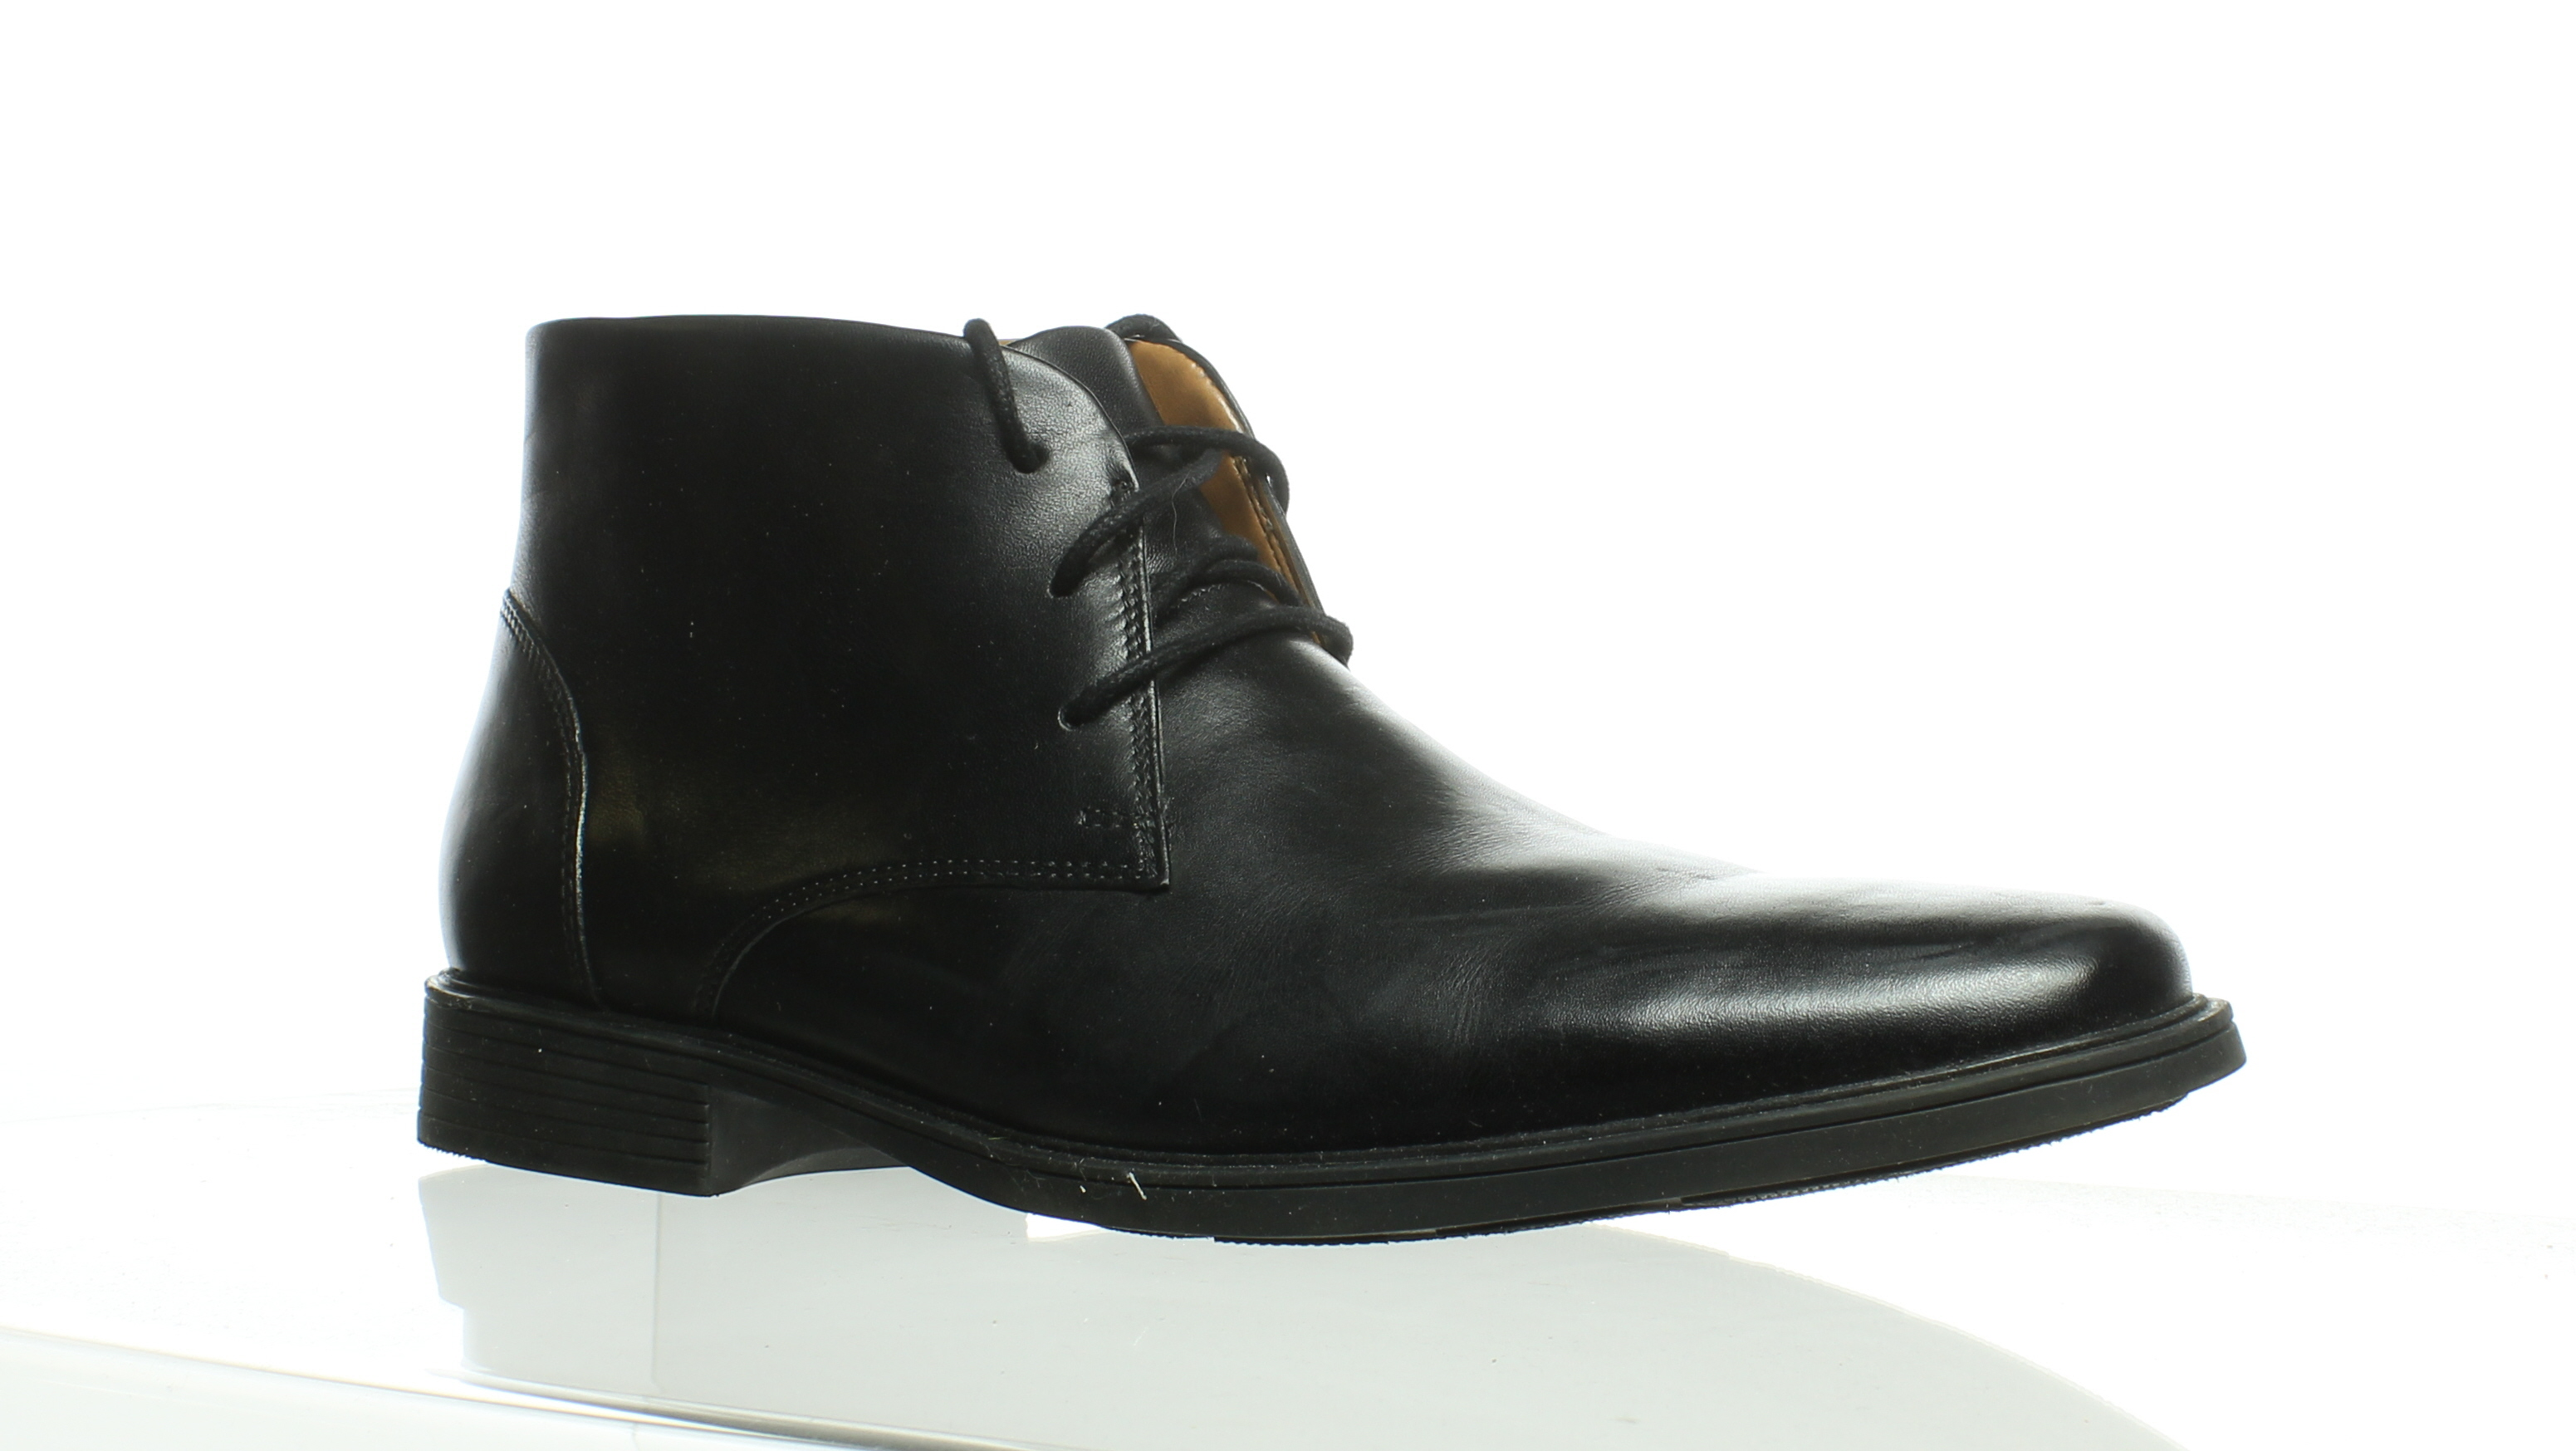 6fdc8b1371f27 Clarks Mens Tilden Top Black Leather Ankle Boots Size 8.5 ...